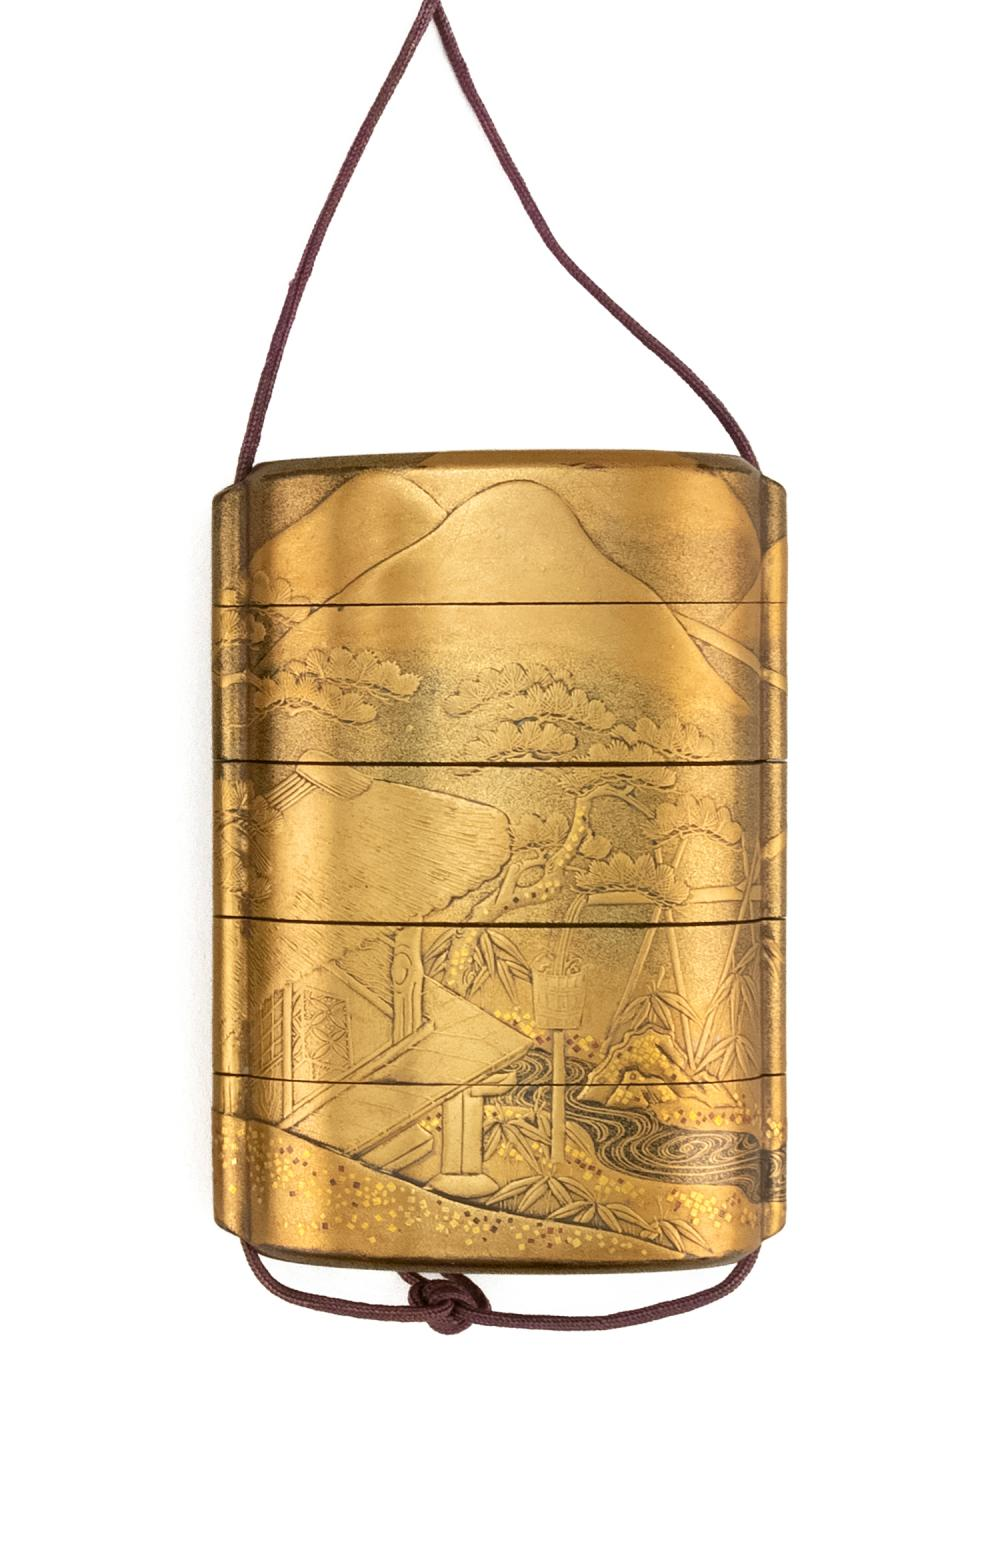 JAPANESE GILT LACQUER FIVE-CASE INRO Finely decorated with a cottage in mountain landscape, flowers and trees. Nashiji lacquer inter...